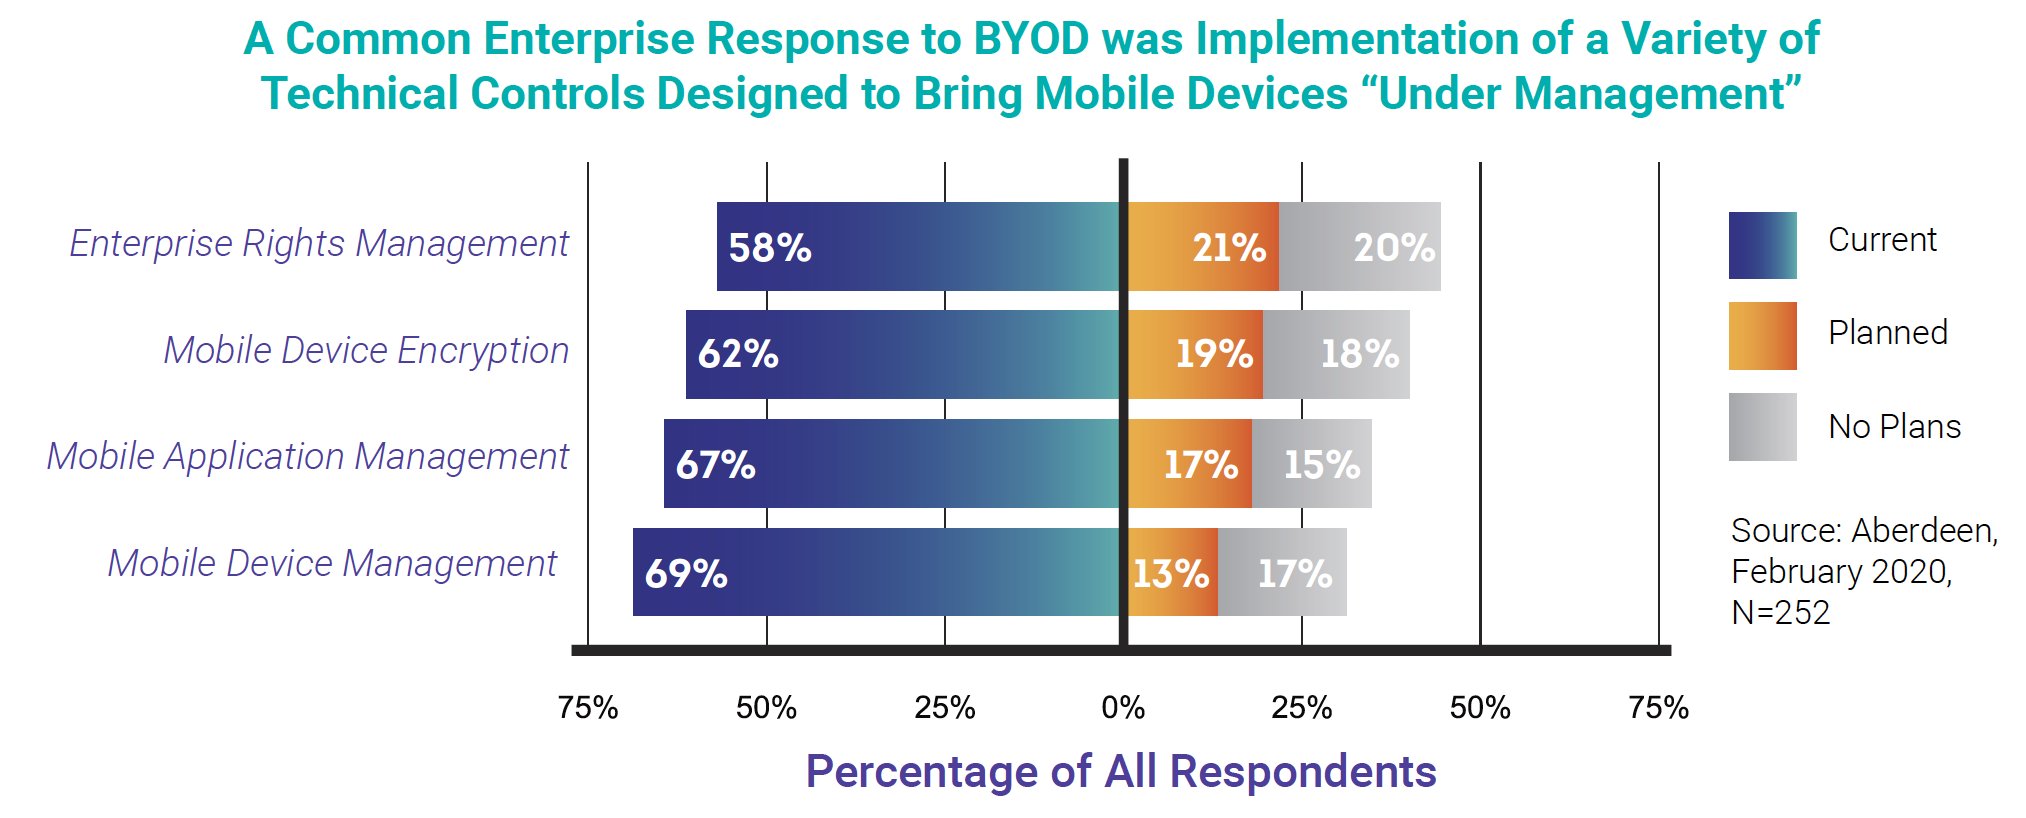 """A Common Enterprise Response to BYOD was Implementation of a Variety of Technical Controls Designed to Bring Mobile Devices """"Under Management"""""""